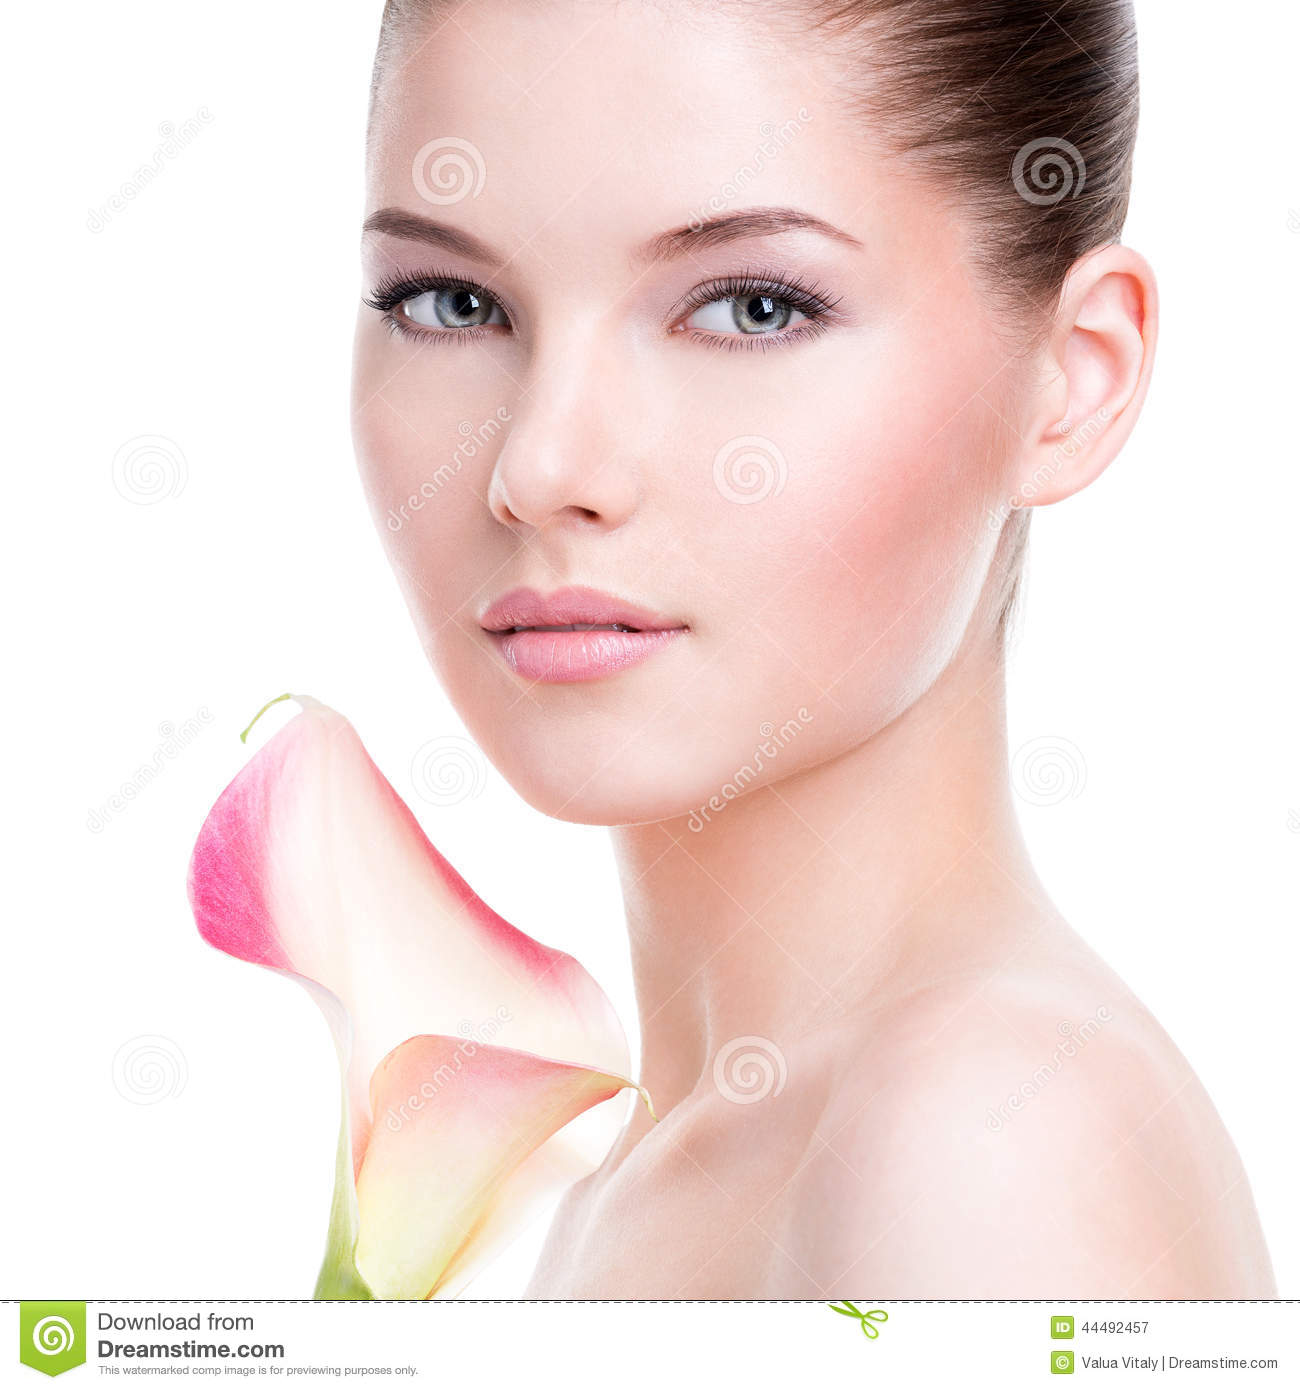 Healthy Skin Care: Beautiful Face Of Young Pretty Woman With Healthy Skin